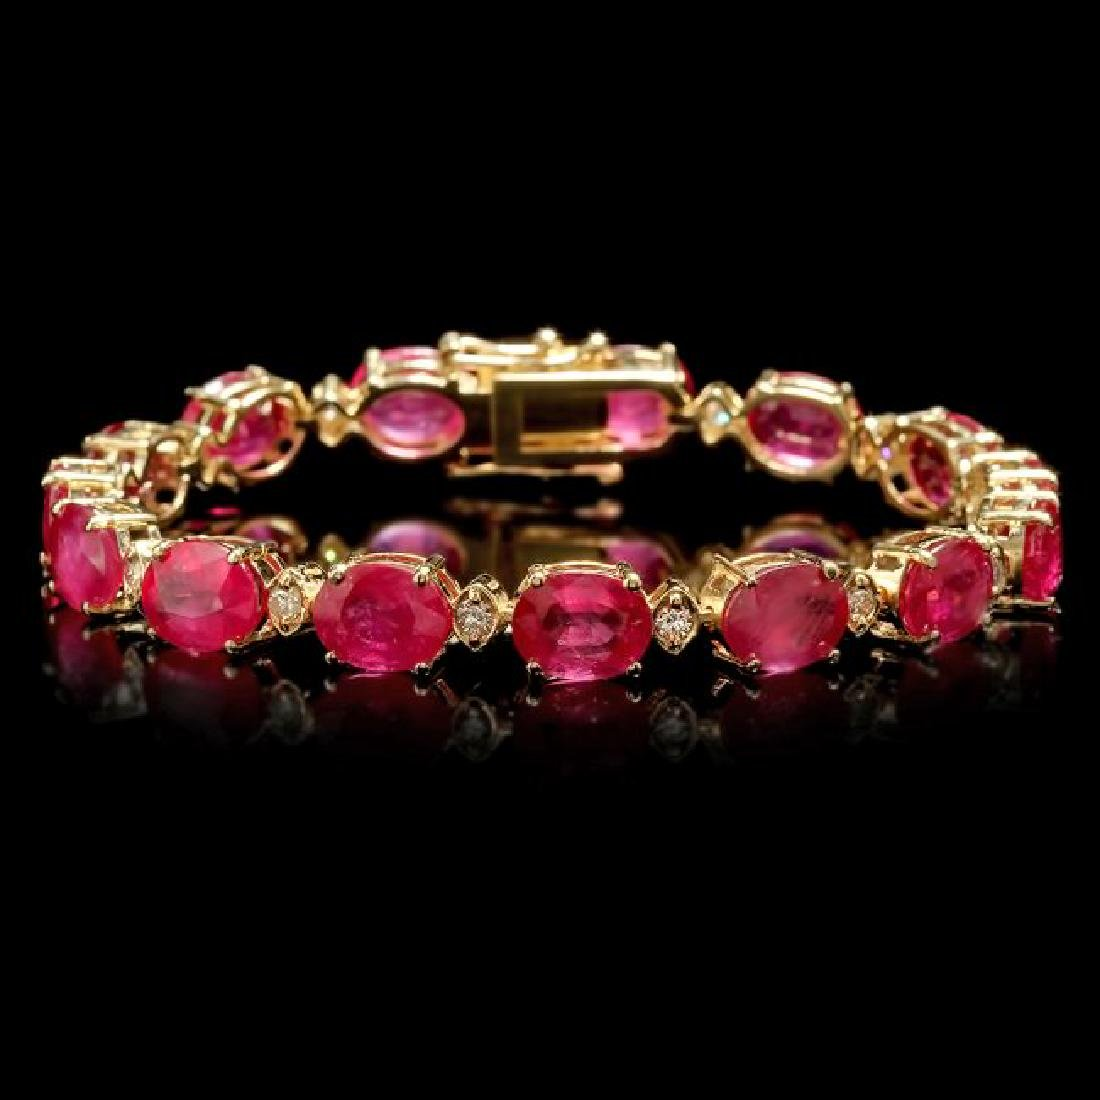 14k Gold 35.00ct Ruby 1.15ct Diamond Bracelet